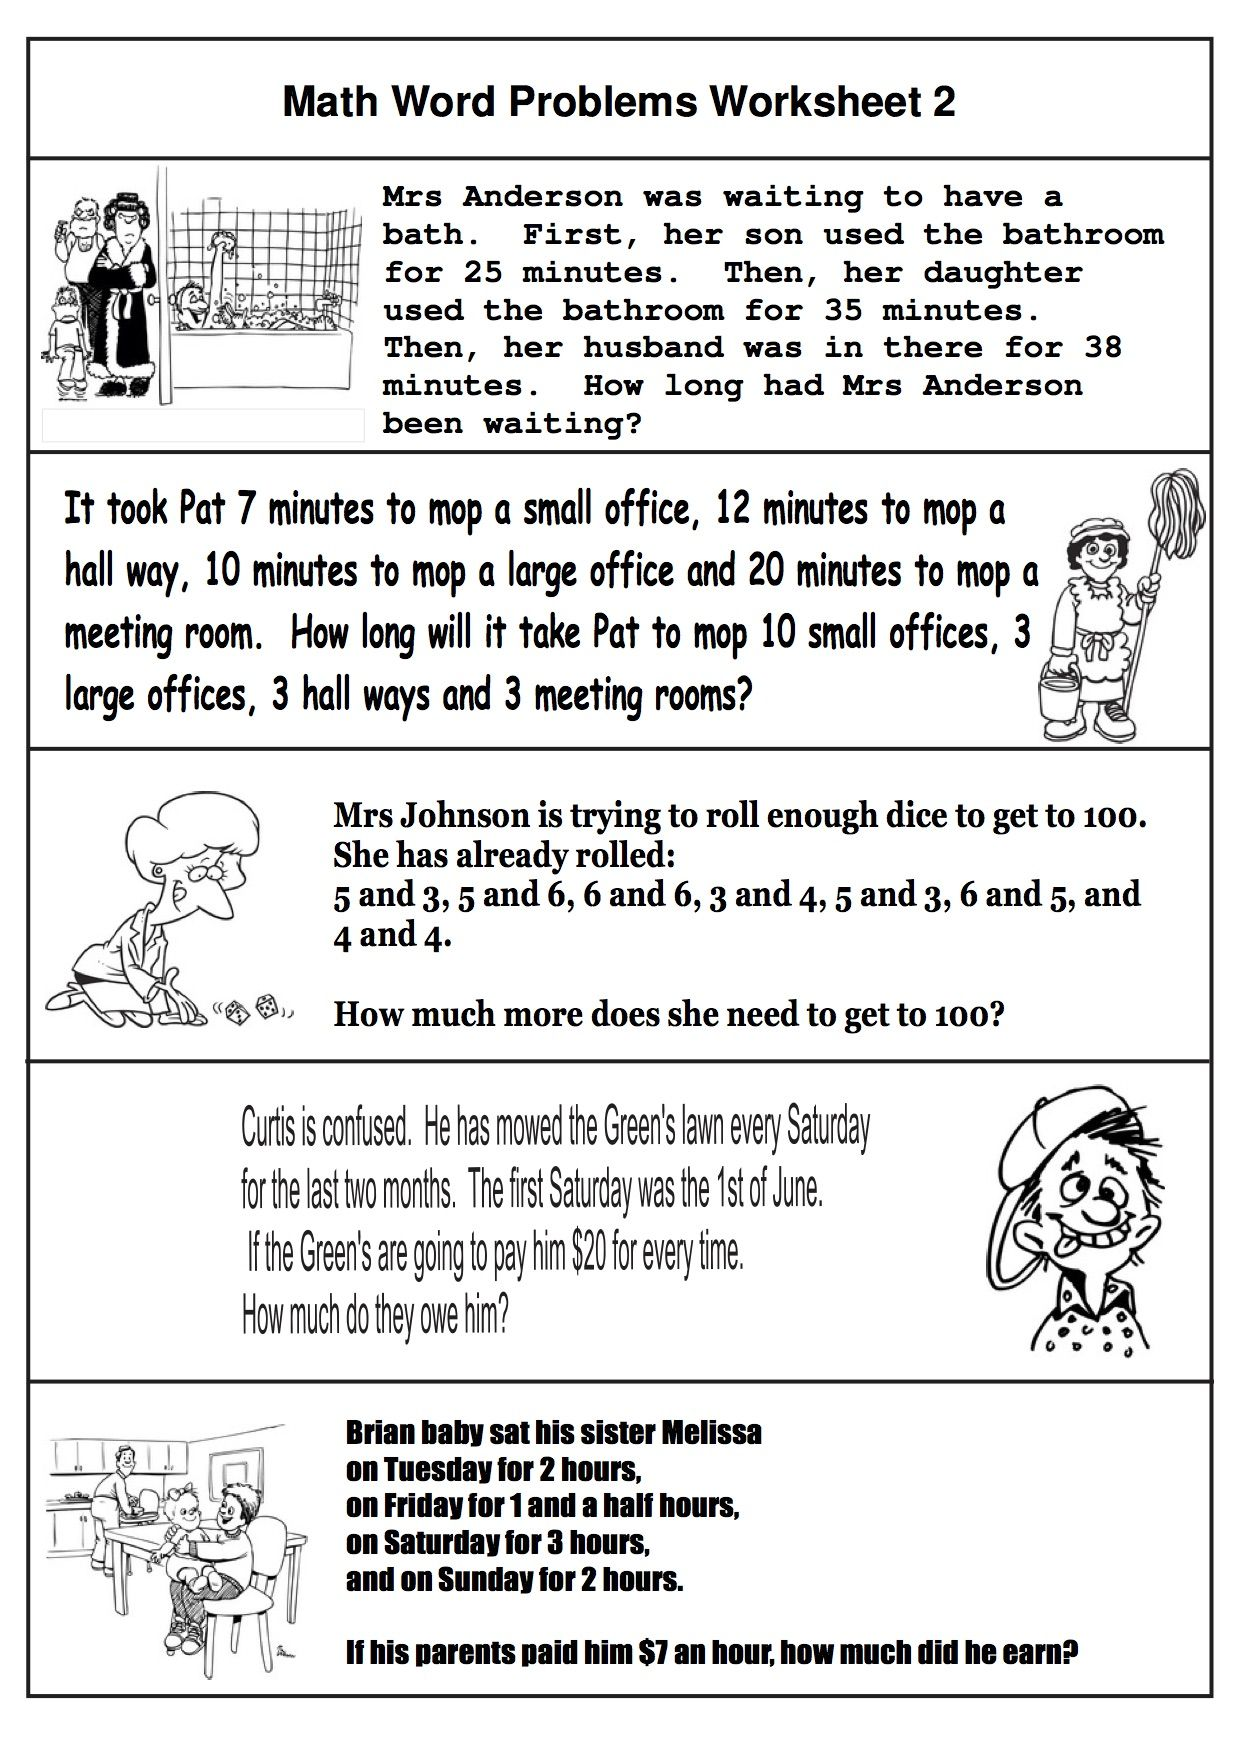 Free Math Word Problems